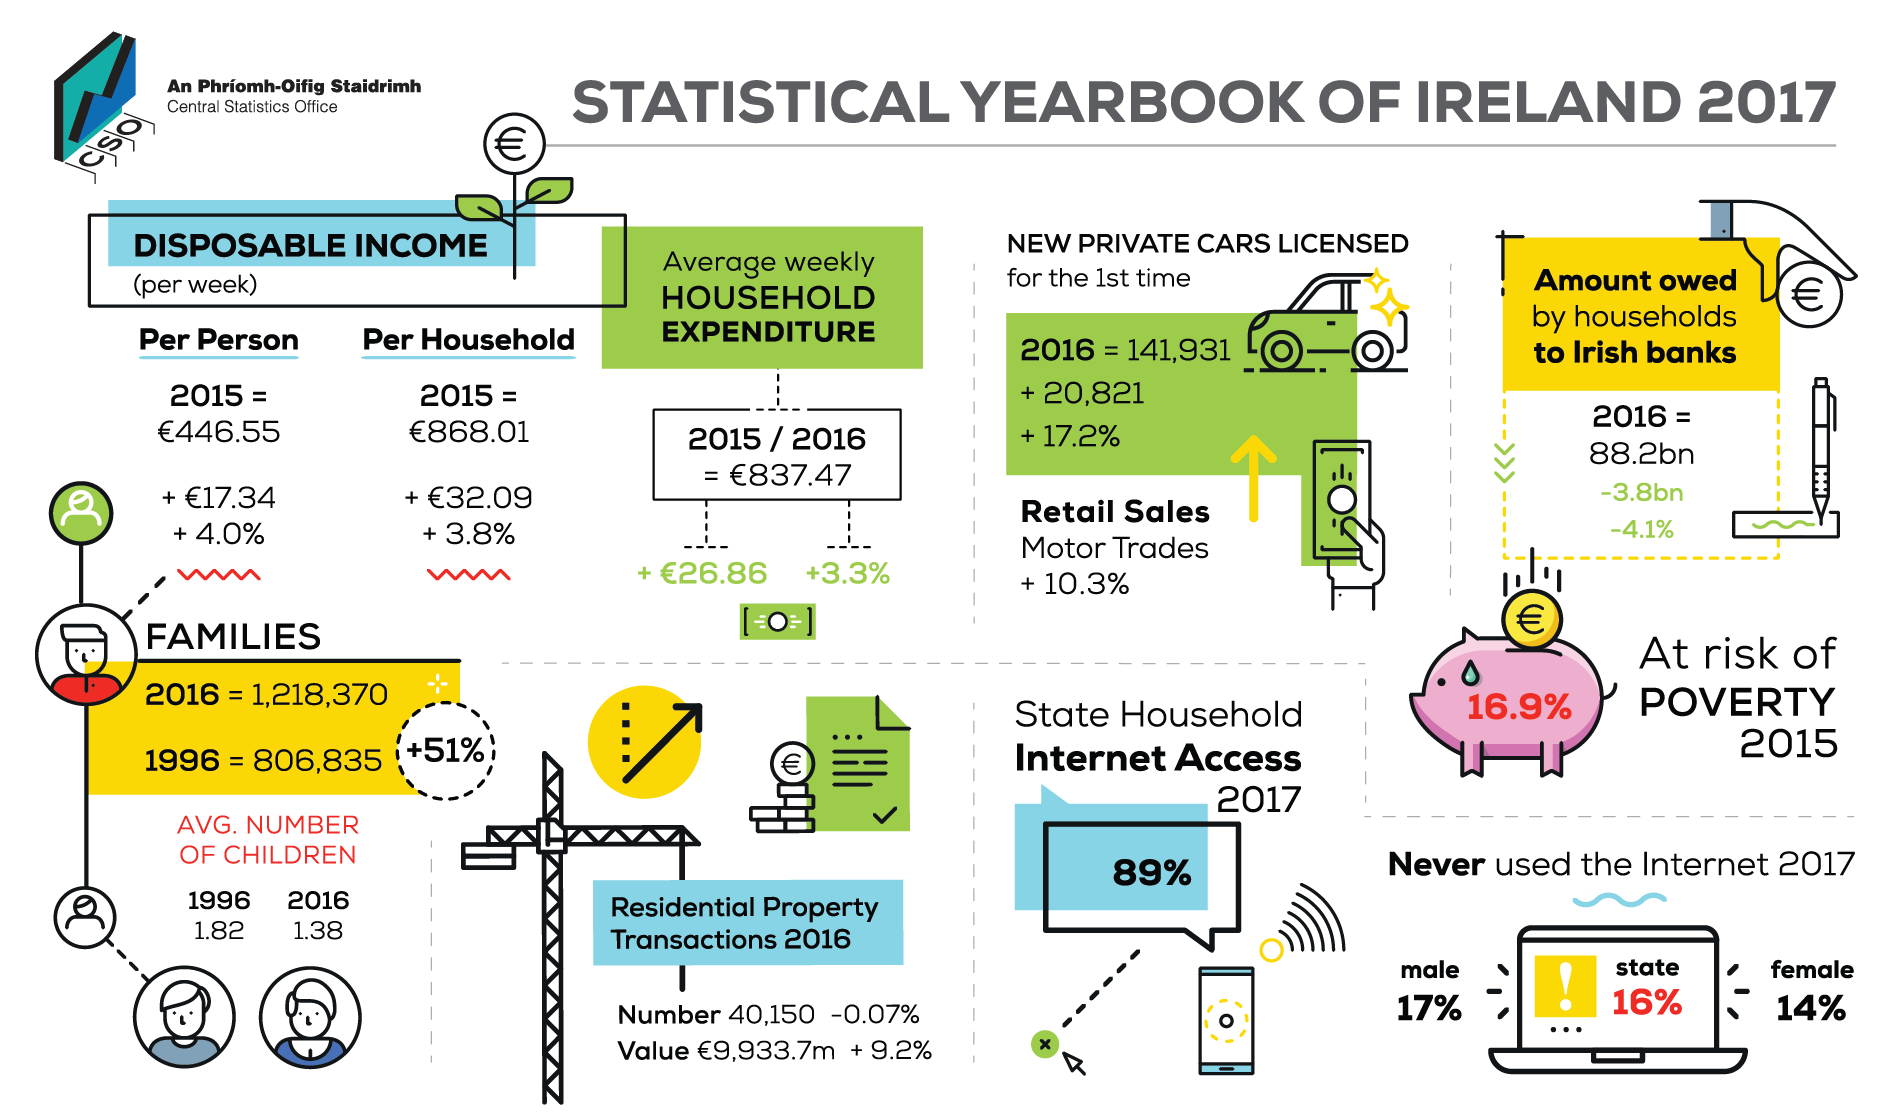 an overview of the economy of ireland Basic data on ireland's income tax rates tax laws vat ireland's overview of economy main economic indicators gdp inflation rates unemployment  our ireland site.